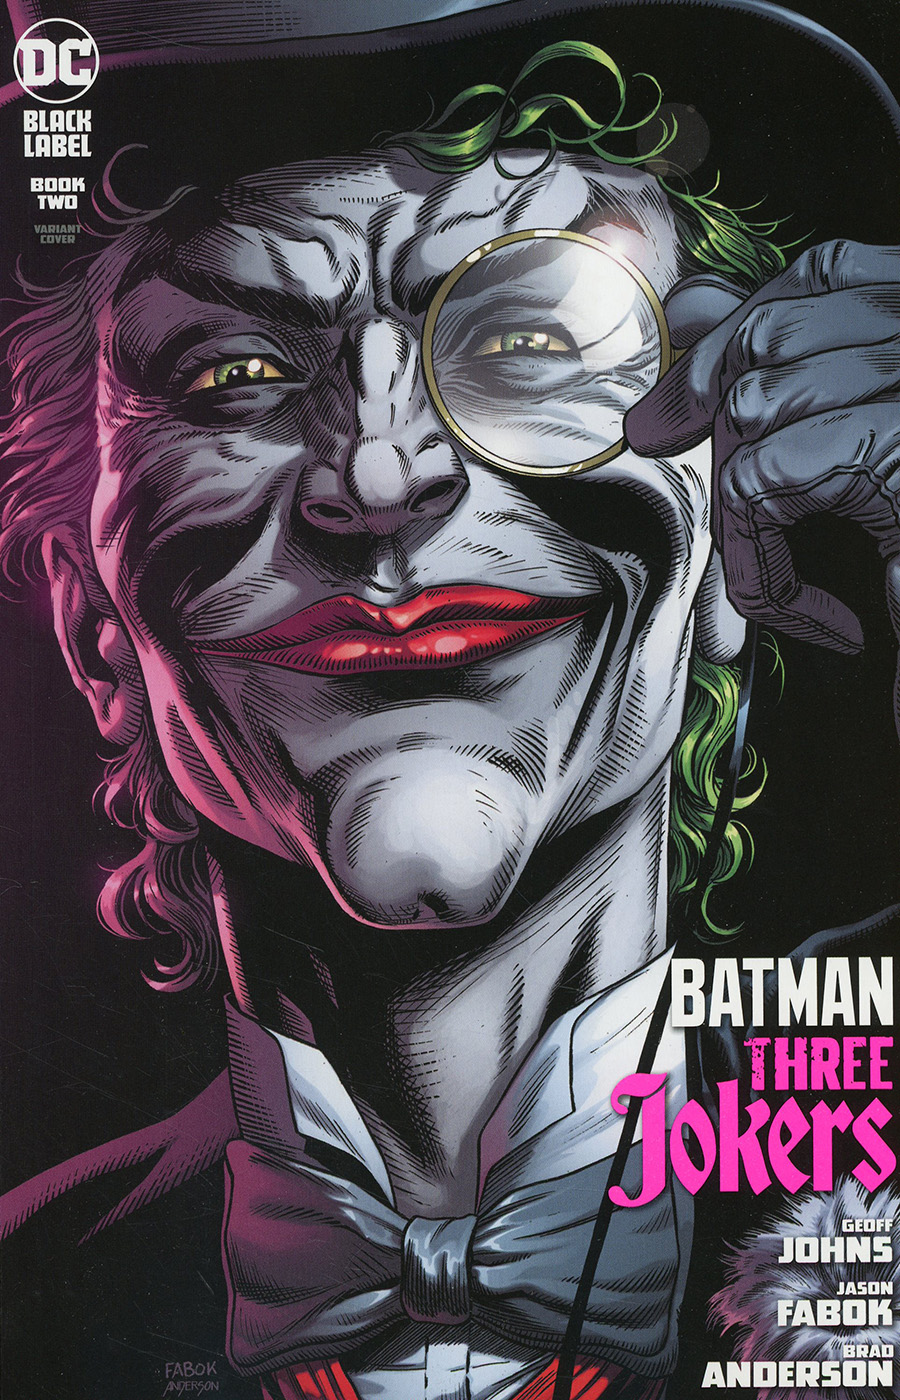 Batman Three Jokers #2 Premium Variant E Jason Fabok Death In The Family Top Hat & Monocle Cover